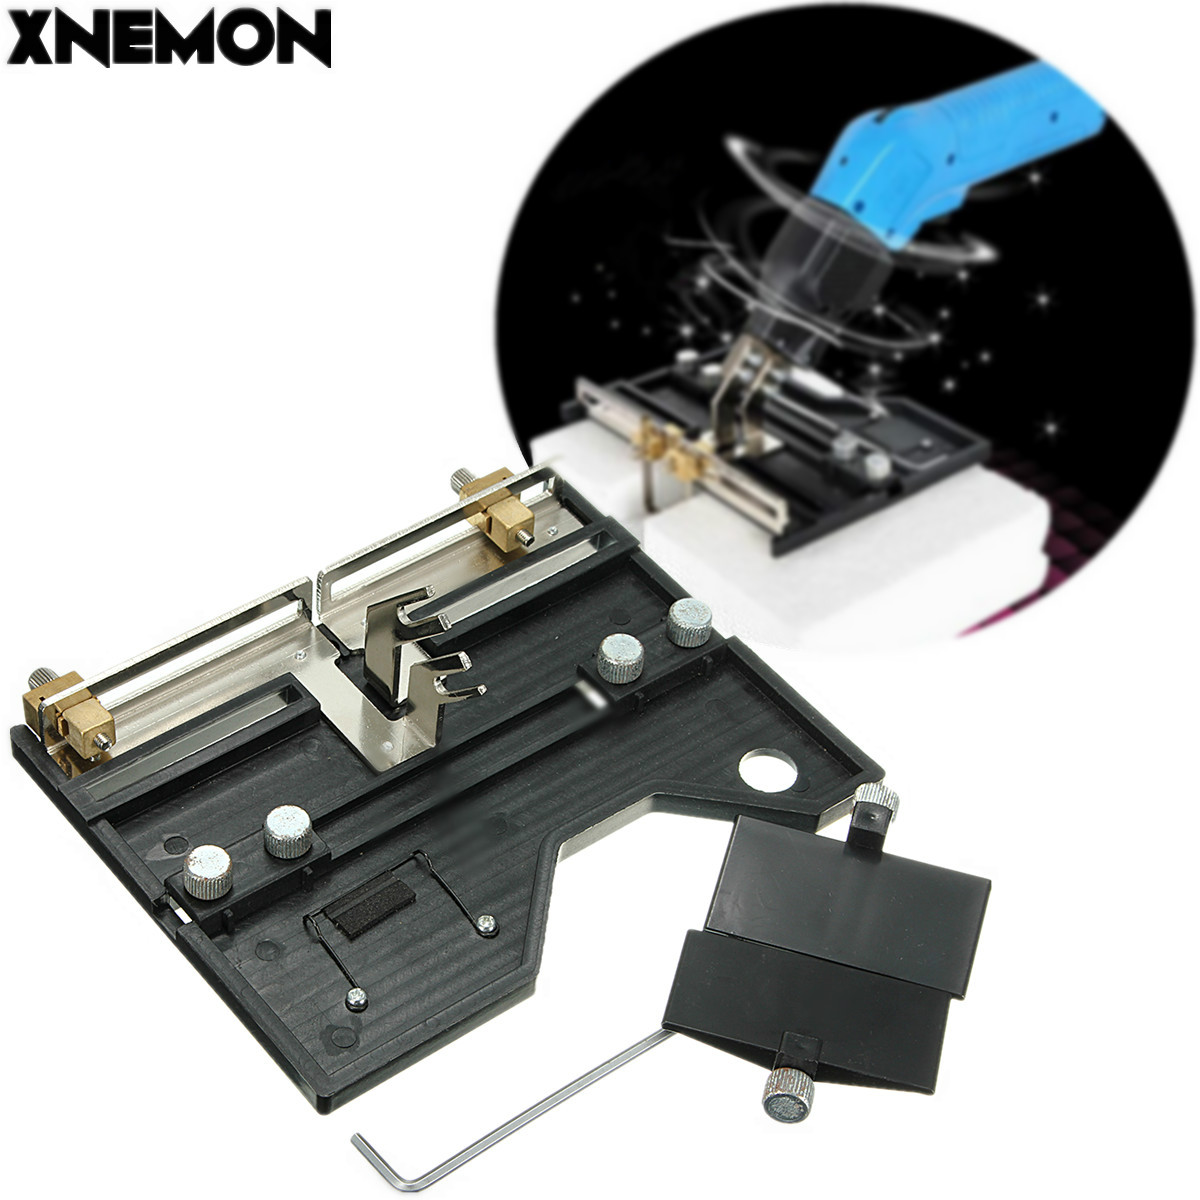 XNEMON Large Groove Electric Hot Knife Foam Cutter Heat Wire Grooving Cutting Tool 10-160MM, Adjustable Size Foam Cutting Board craft hot knife styrofoam cutter 1pc 10cm pen cuts foam kt board wax cutting machine electronic voltage transformer adaptor